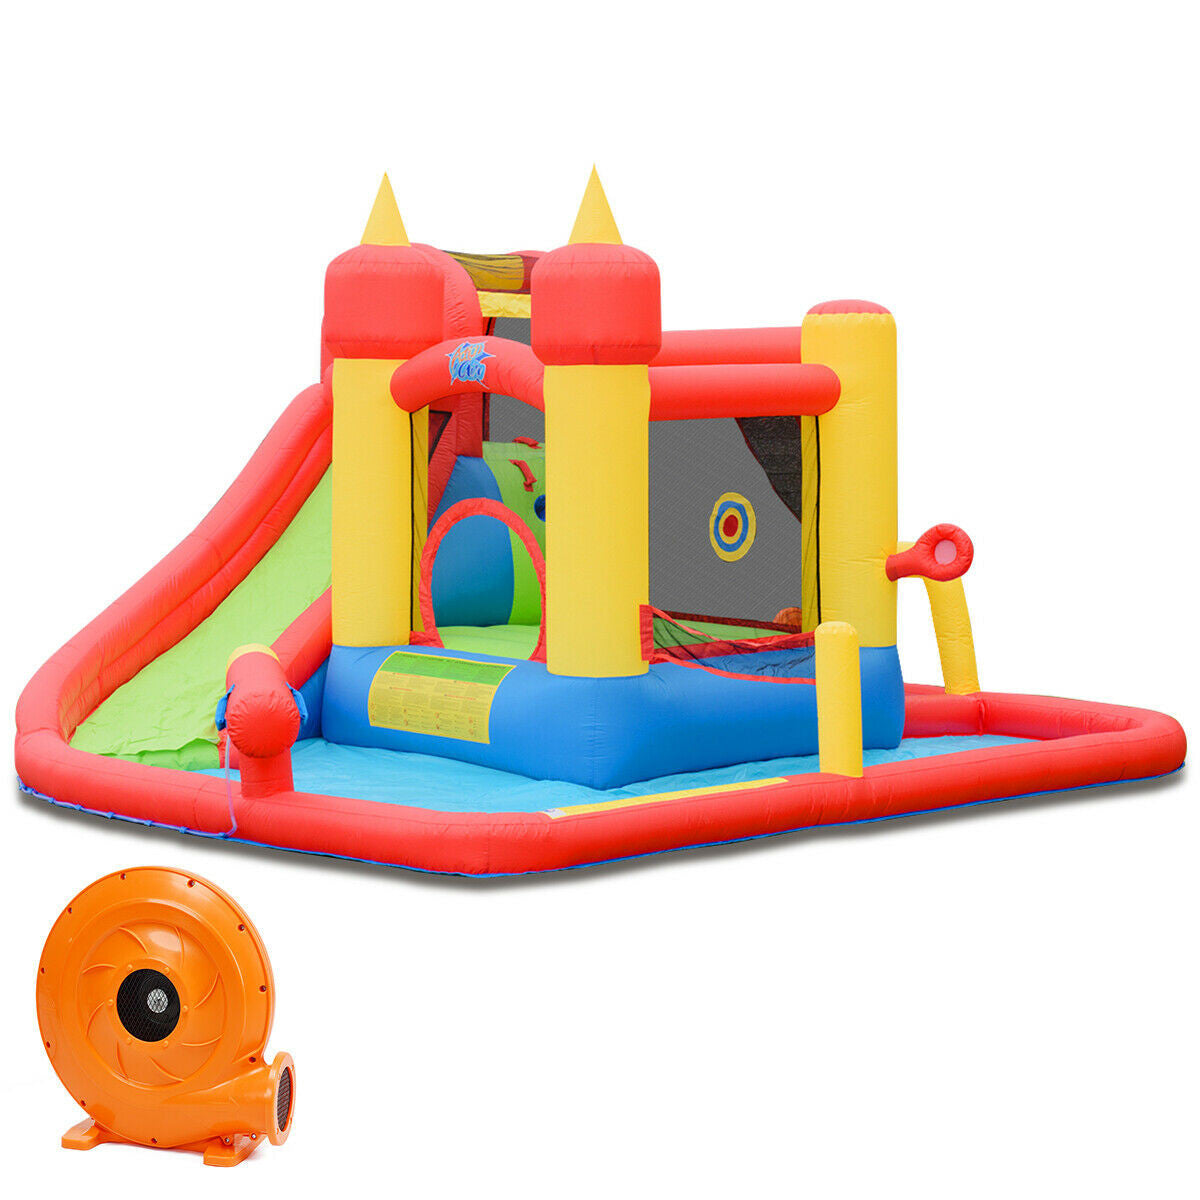 Inflatable Castle Water Slide Jumping Bounce House with 740 W Blower - FREE SHIPPING